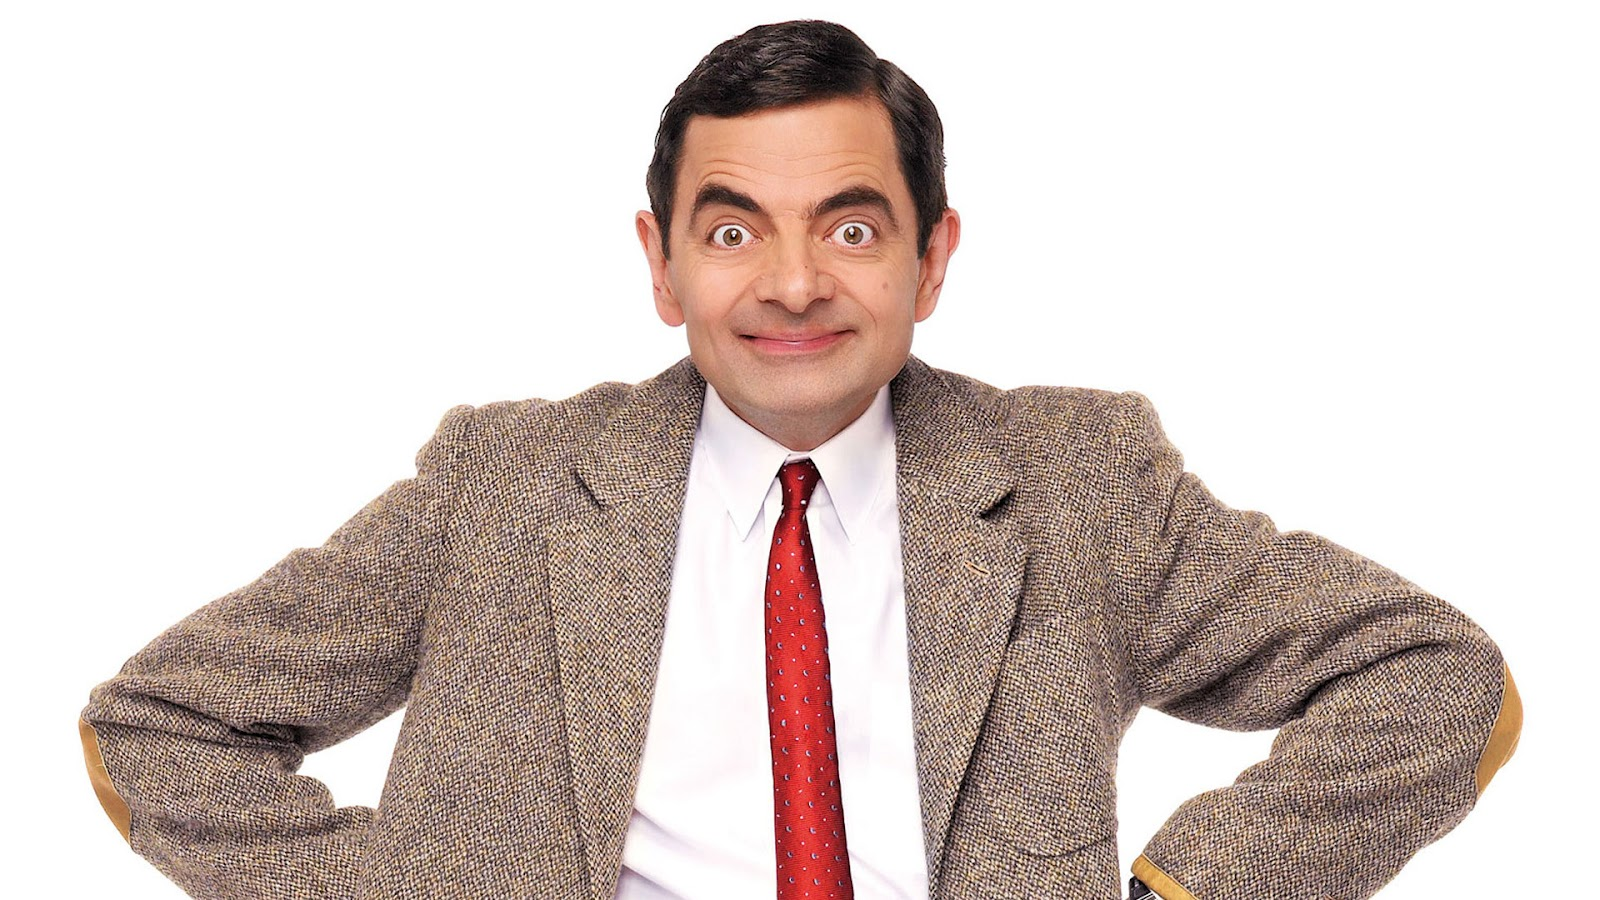 Rowan Atkinson British Actor, Comedian and Writer